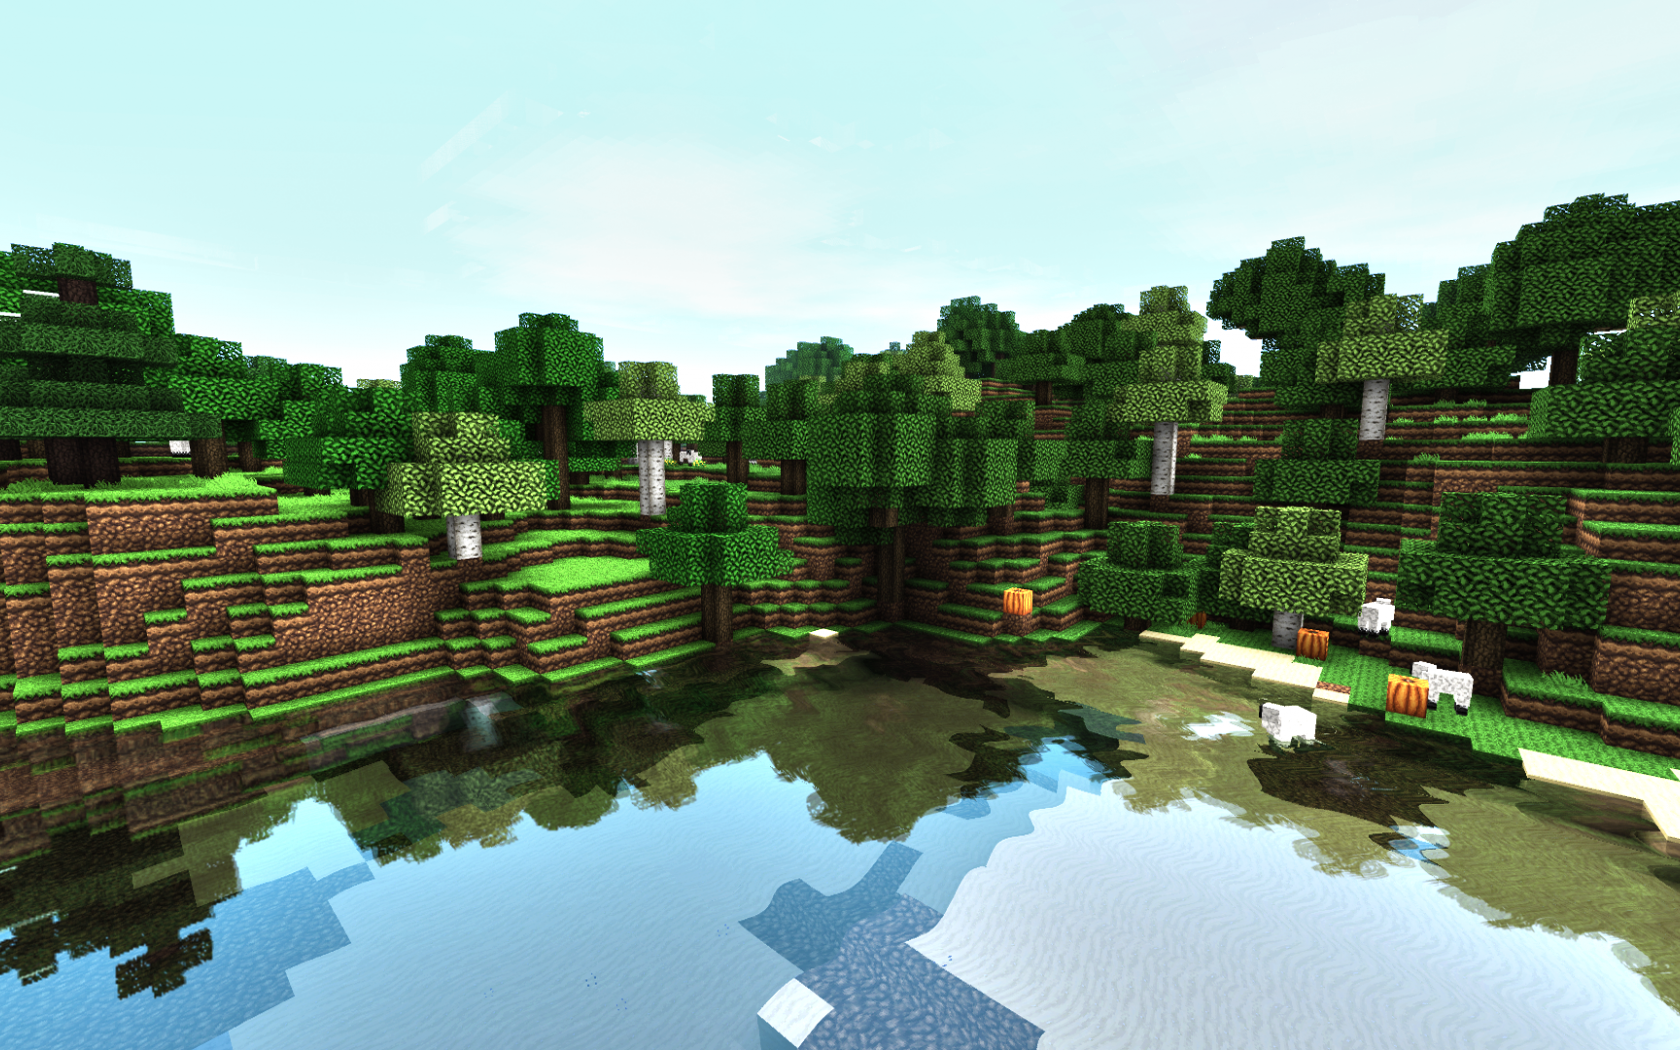 Minecraft Shaders Wallpaper HD You To WallpapersGet Gorgeous Hd Wallpapers 1920x1080